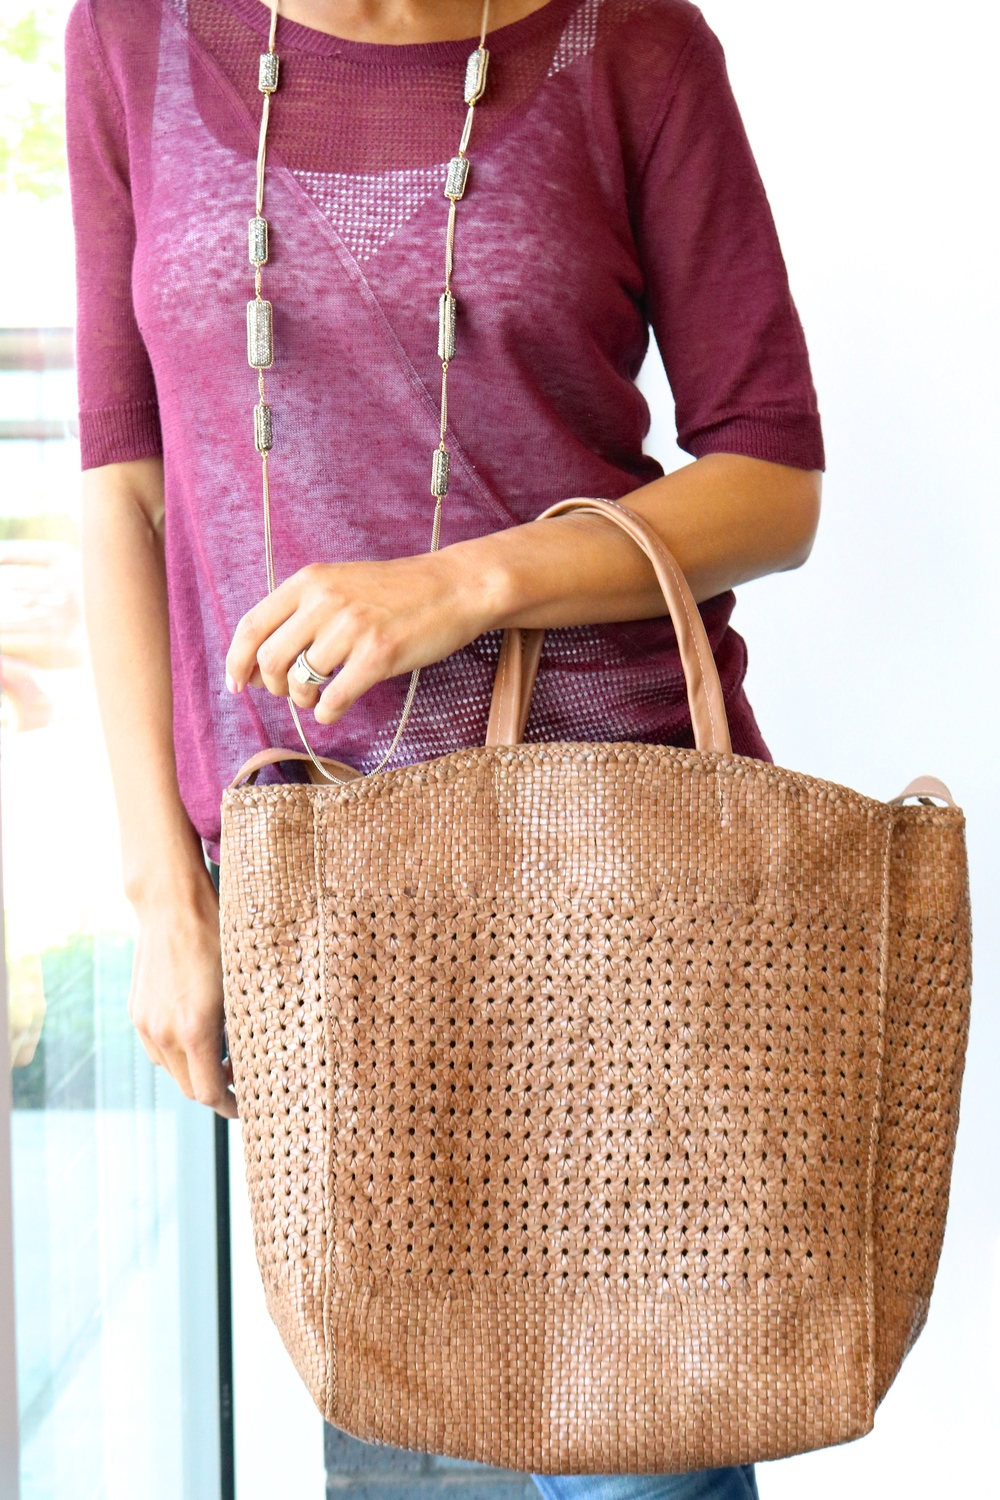 Laggo Terra Tote $525.00 (in-store only)